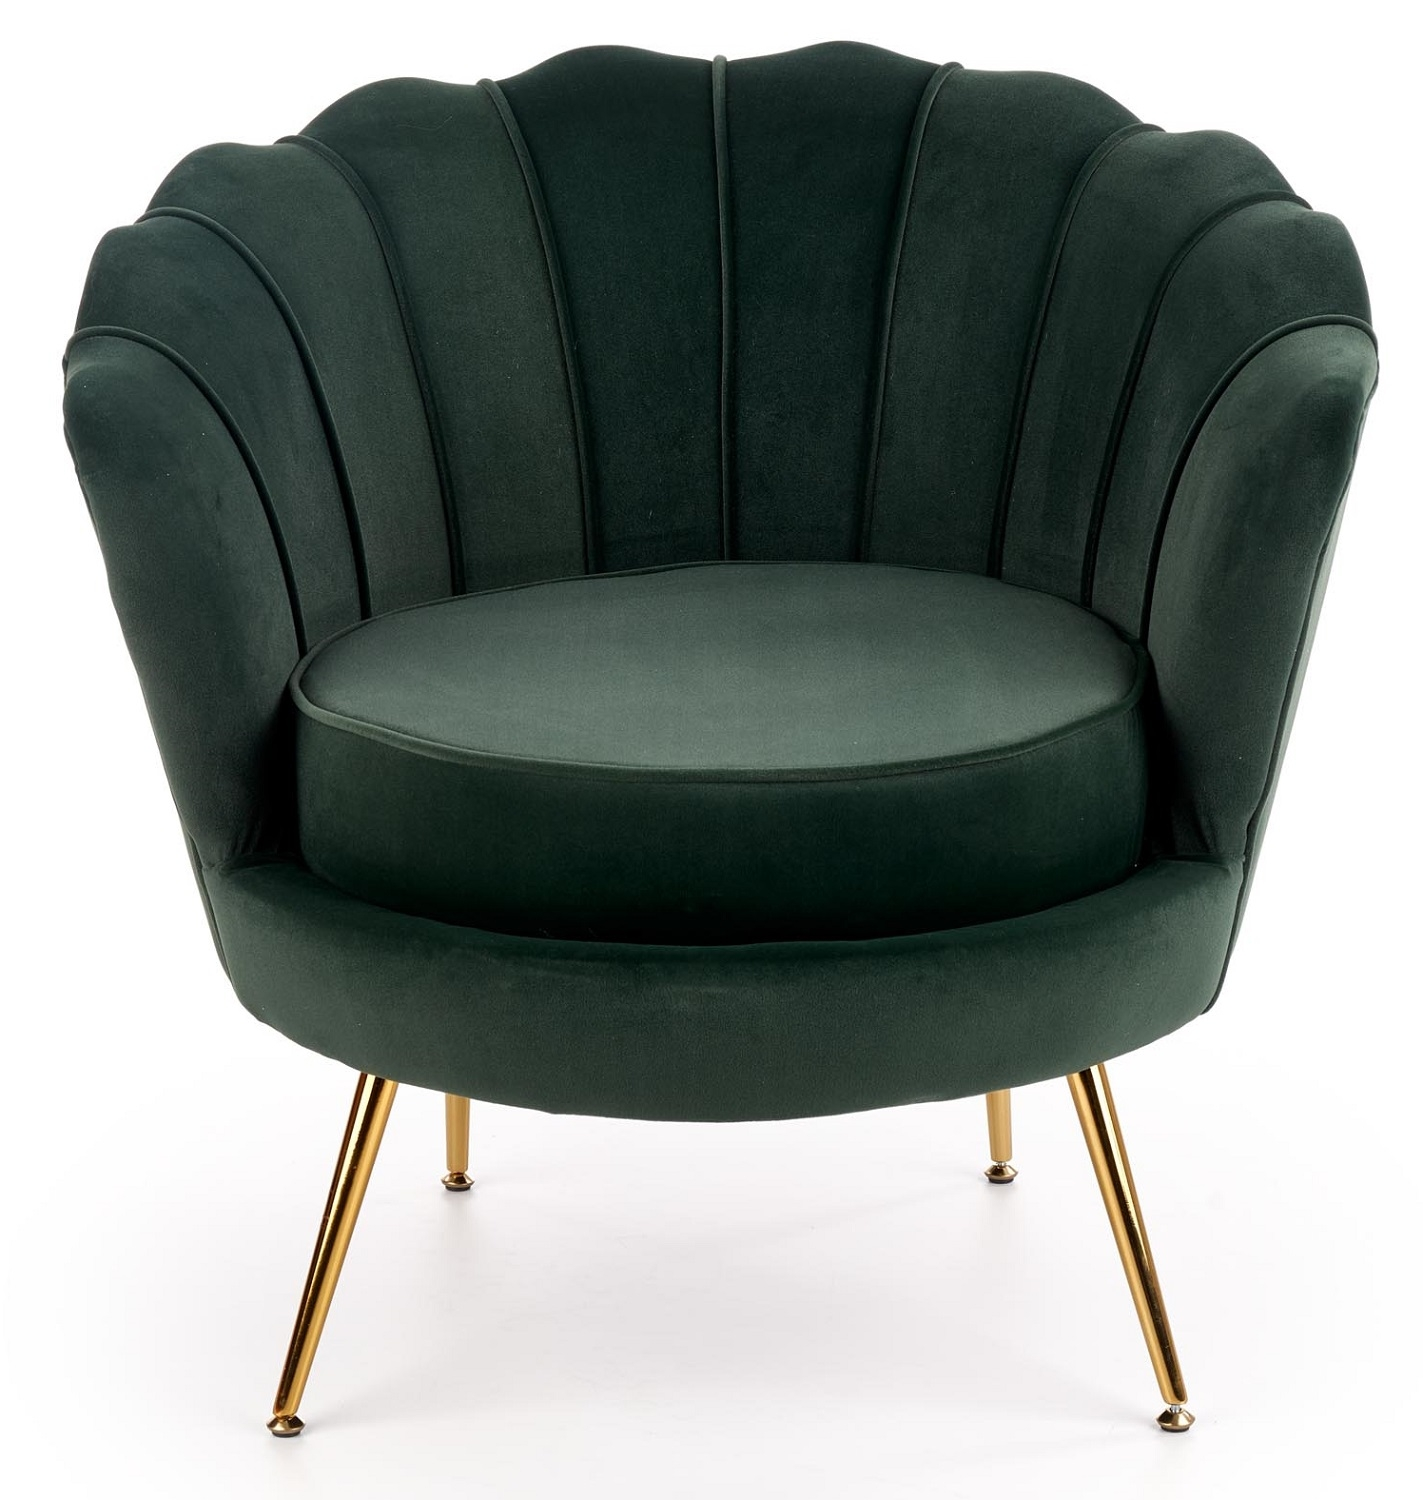 Fauteuil Amorinito 83 cm breed in groen | Home Style